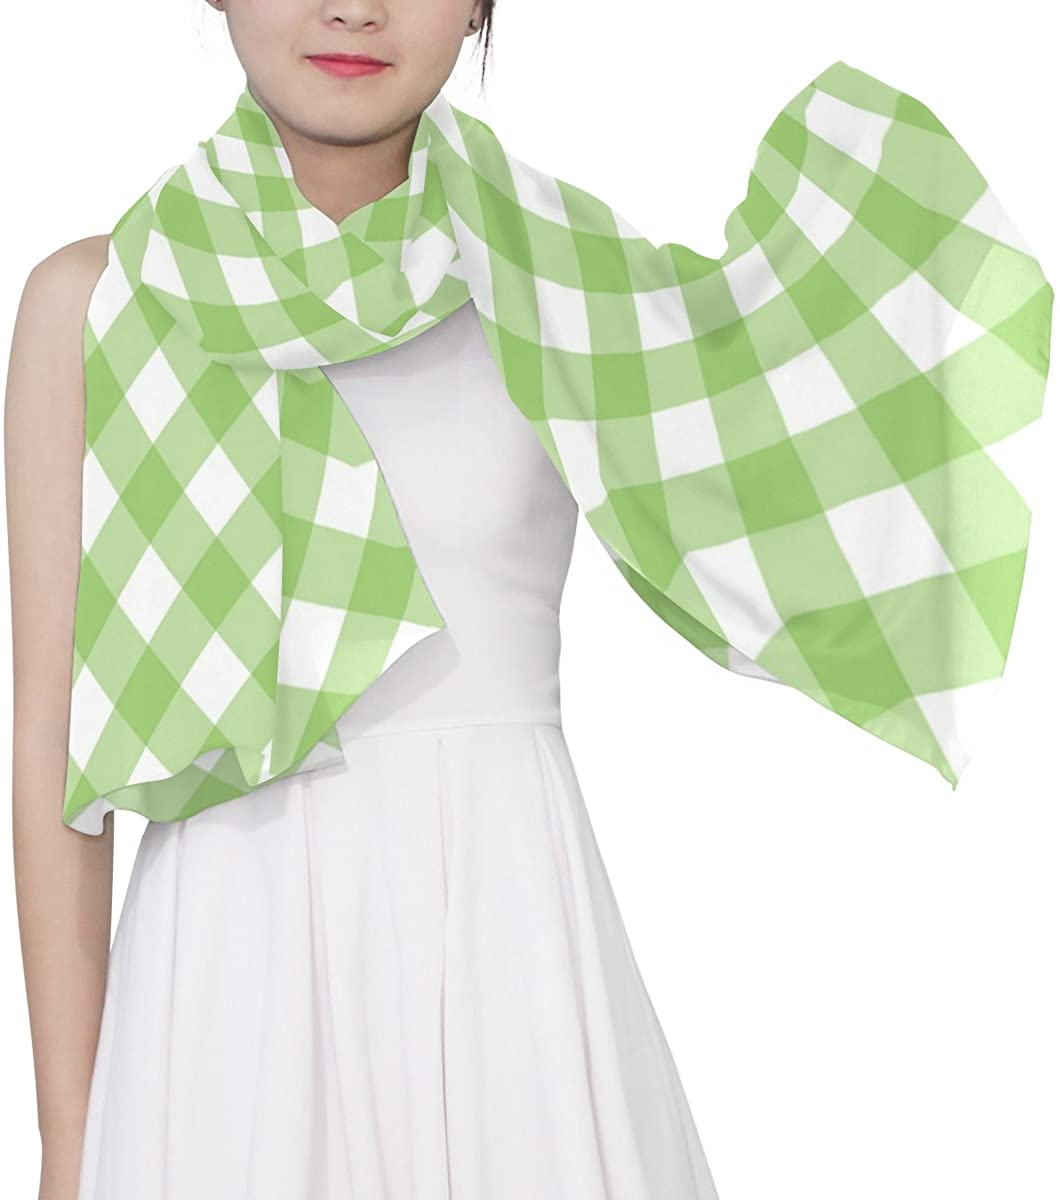 WellLee Green Gingham Sheer Scarves Shawl Wrap Women Oblong Chiffon Scarf for Outdoor